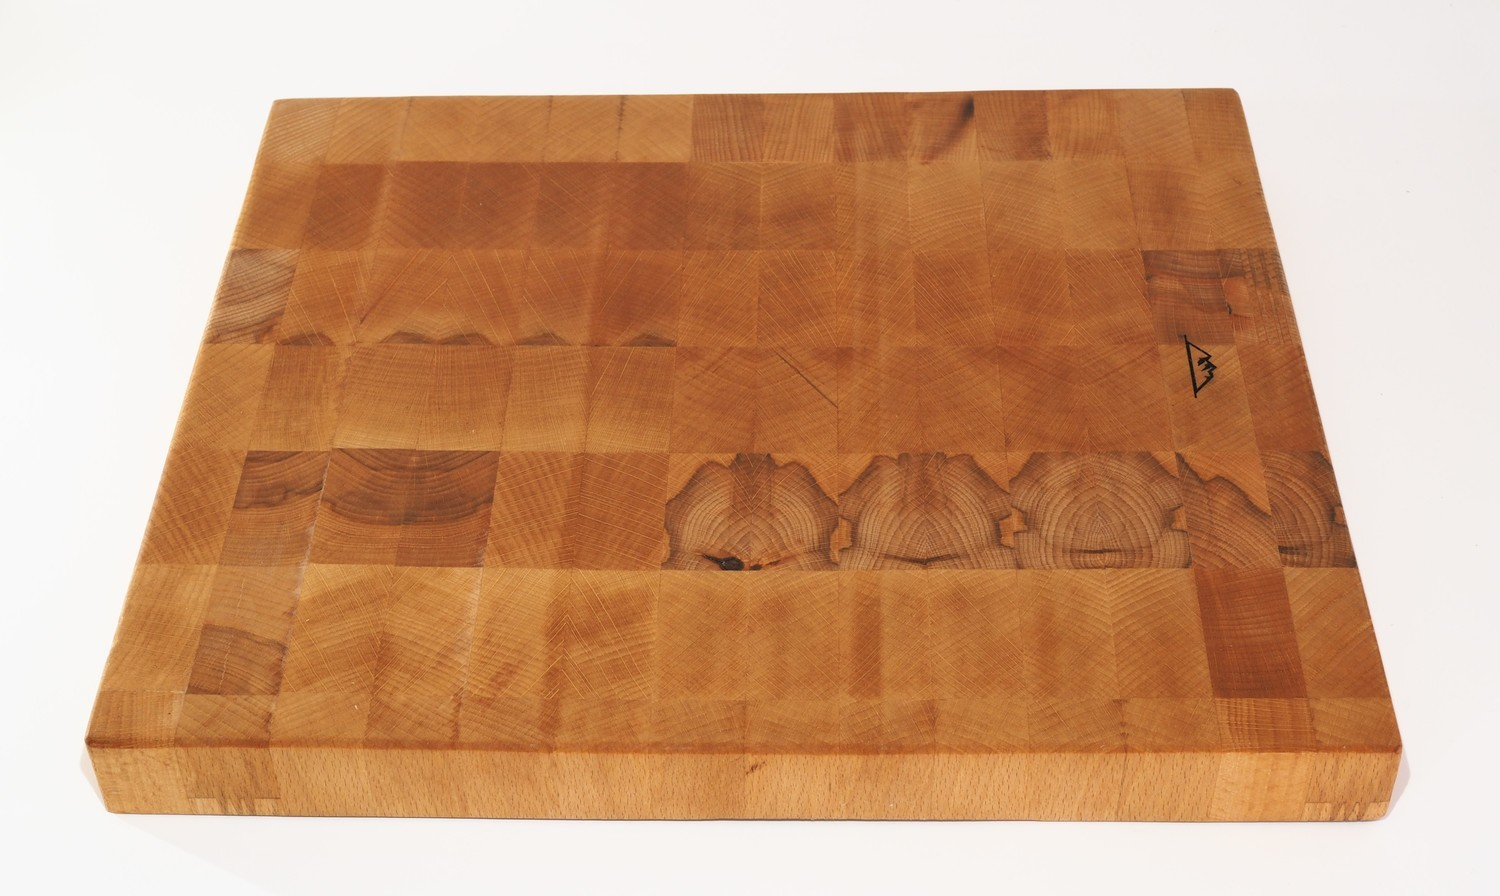 ​Tabla de corte de Haya - End Grain Cutting Board